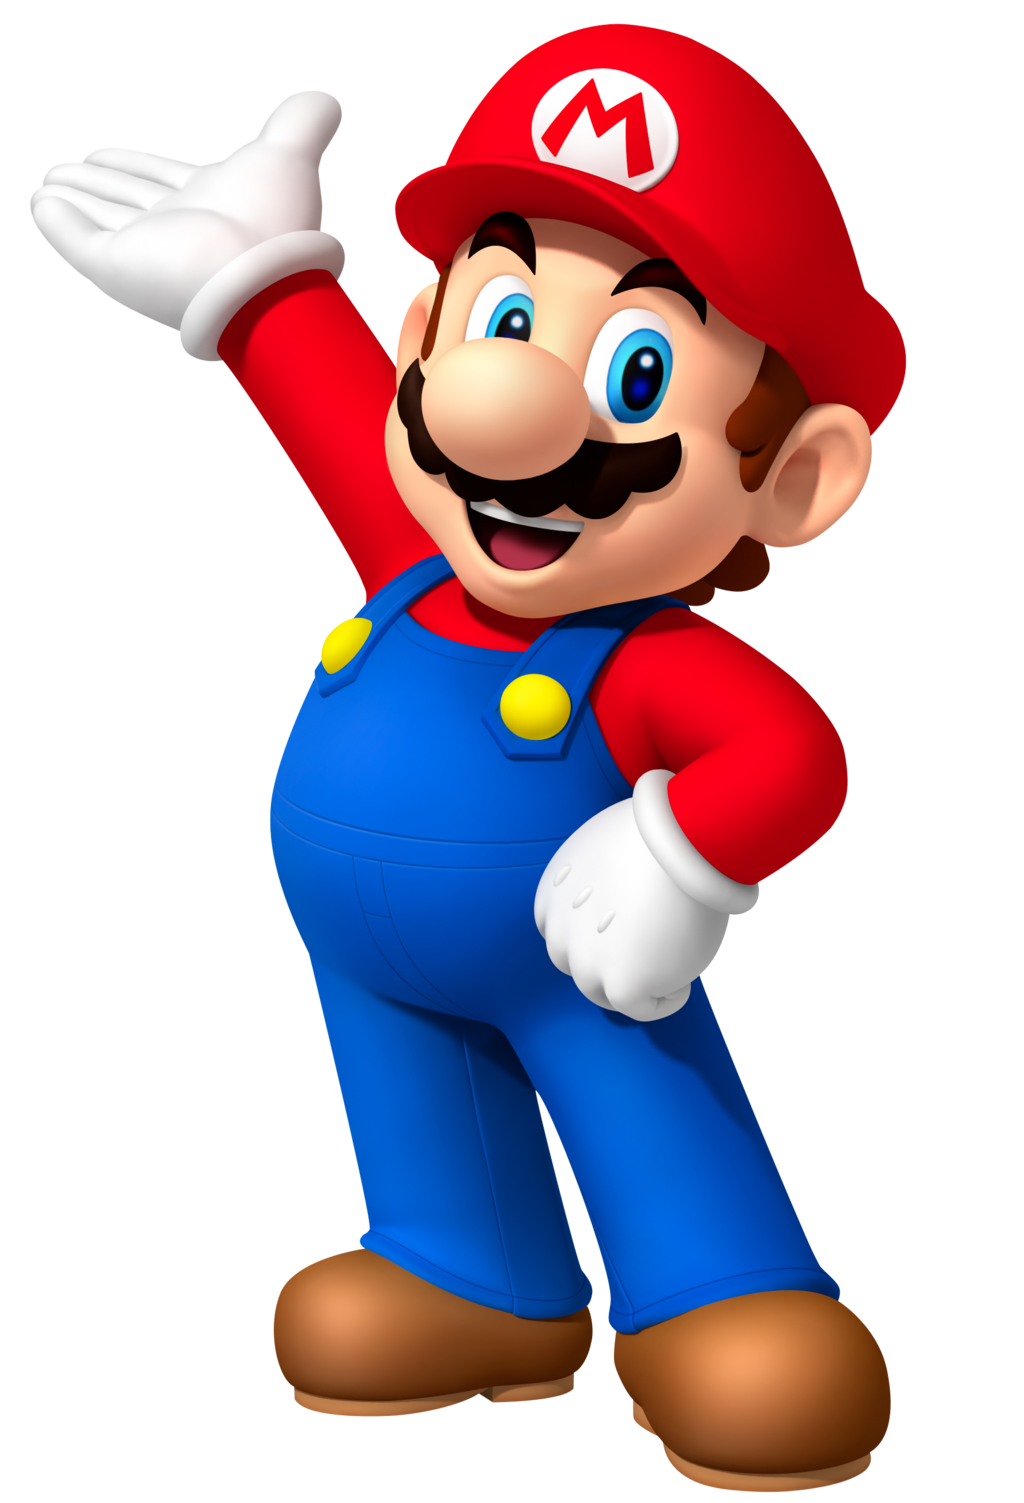 freeuse download Mario Clipart